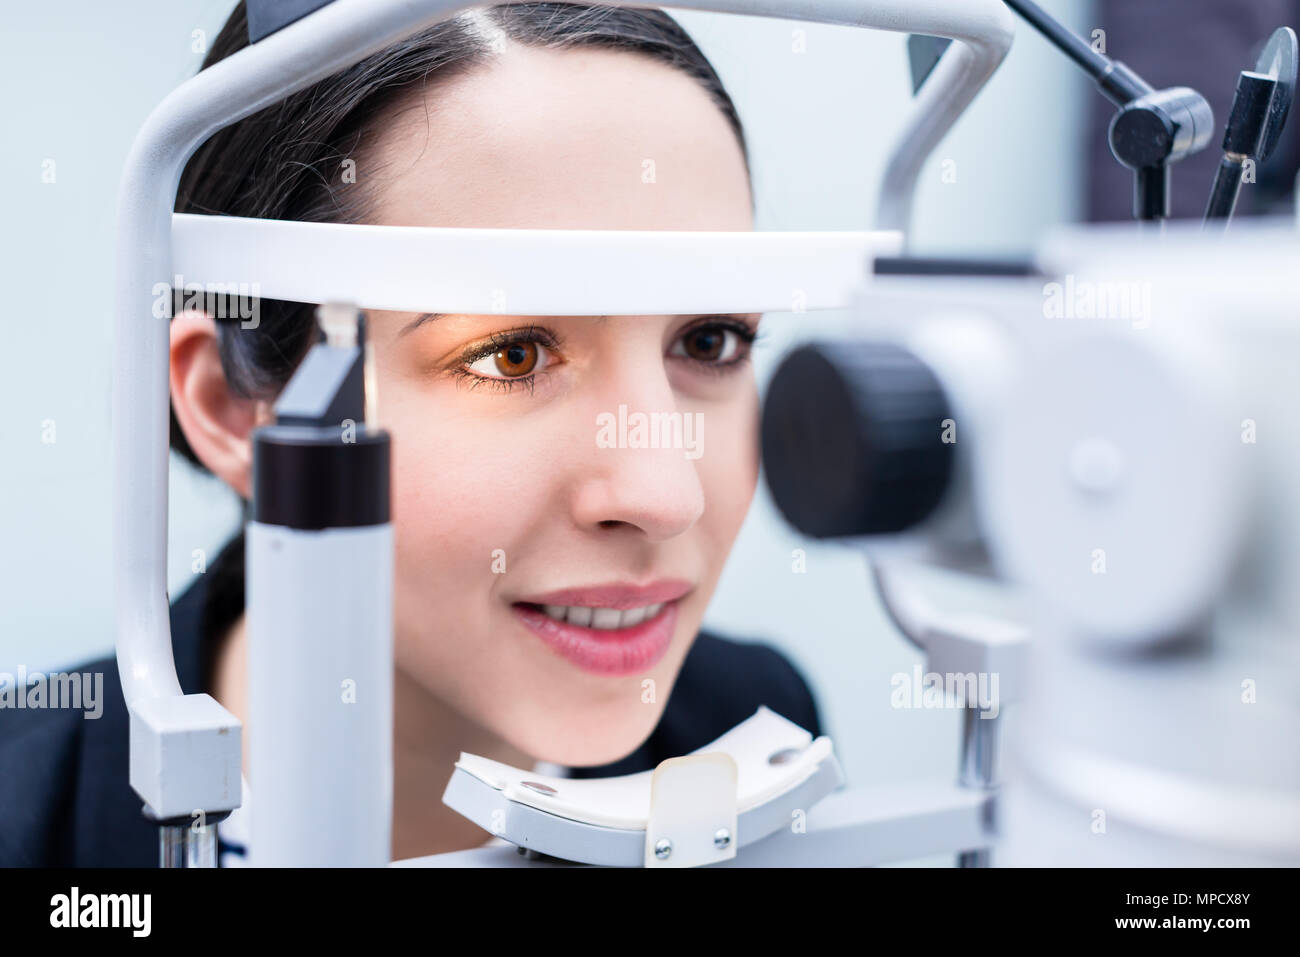 Woman having eyes measured with test device - Stock Image